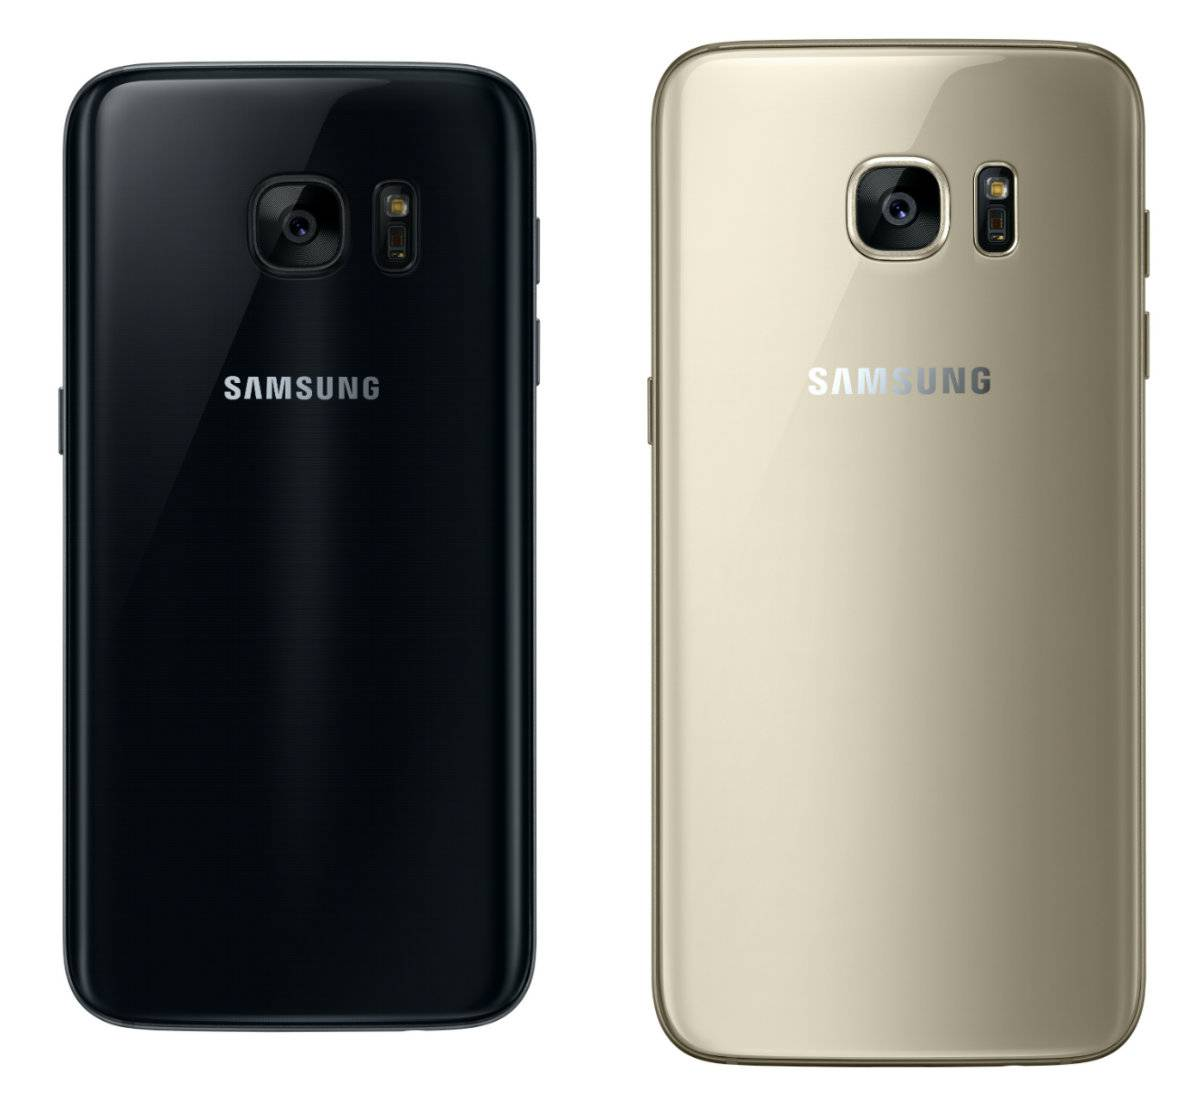 Samsung Galaxy S7 and S7 Edge 1